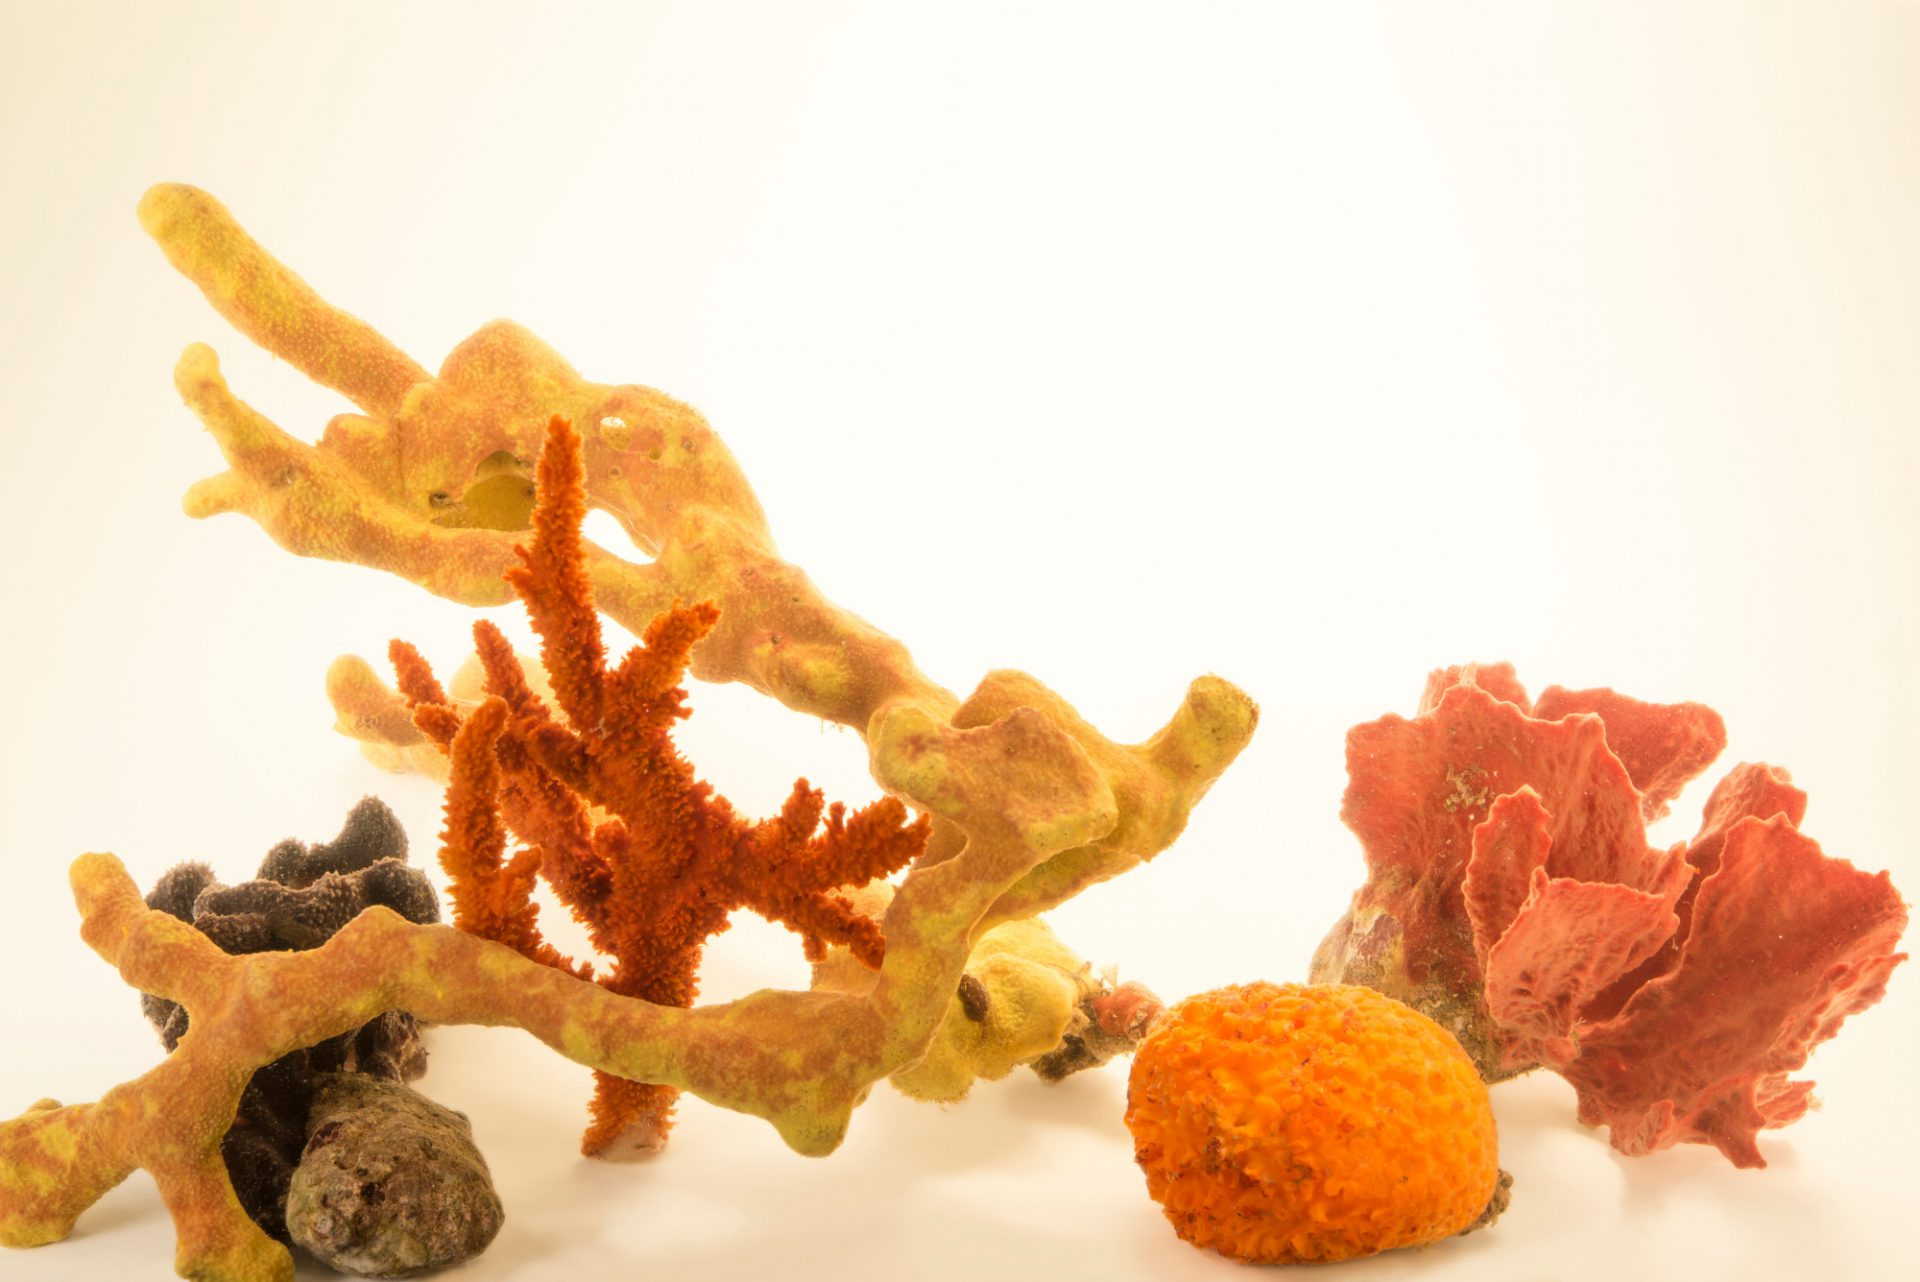 Photo: Sponges at Gulf Specimen Marine Lab and Aquarium.